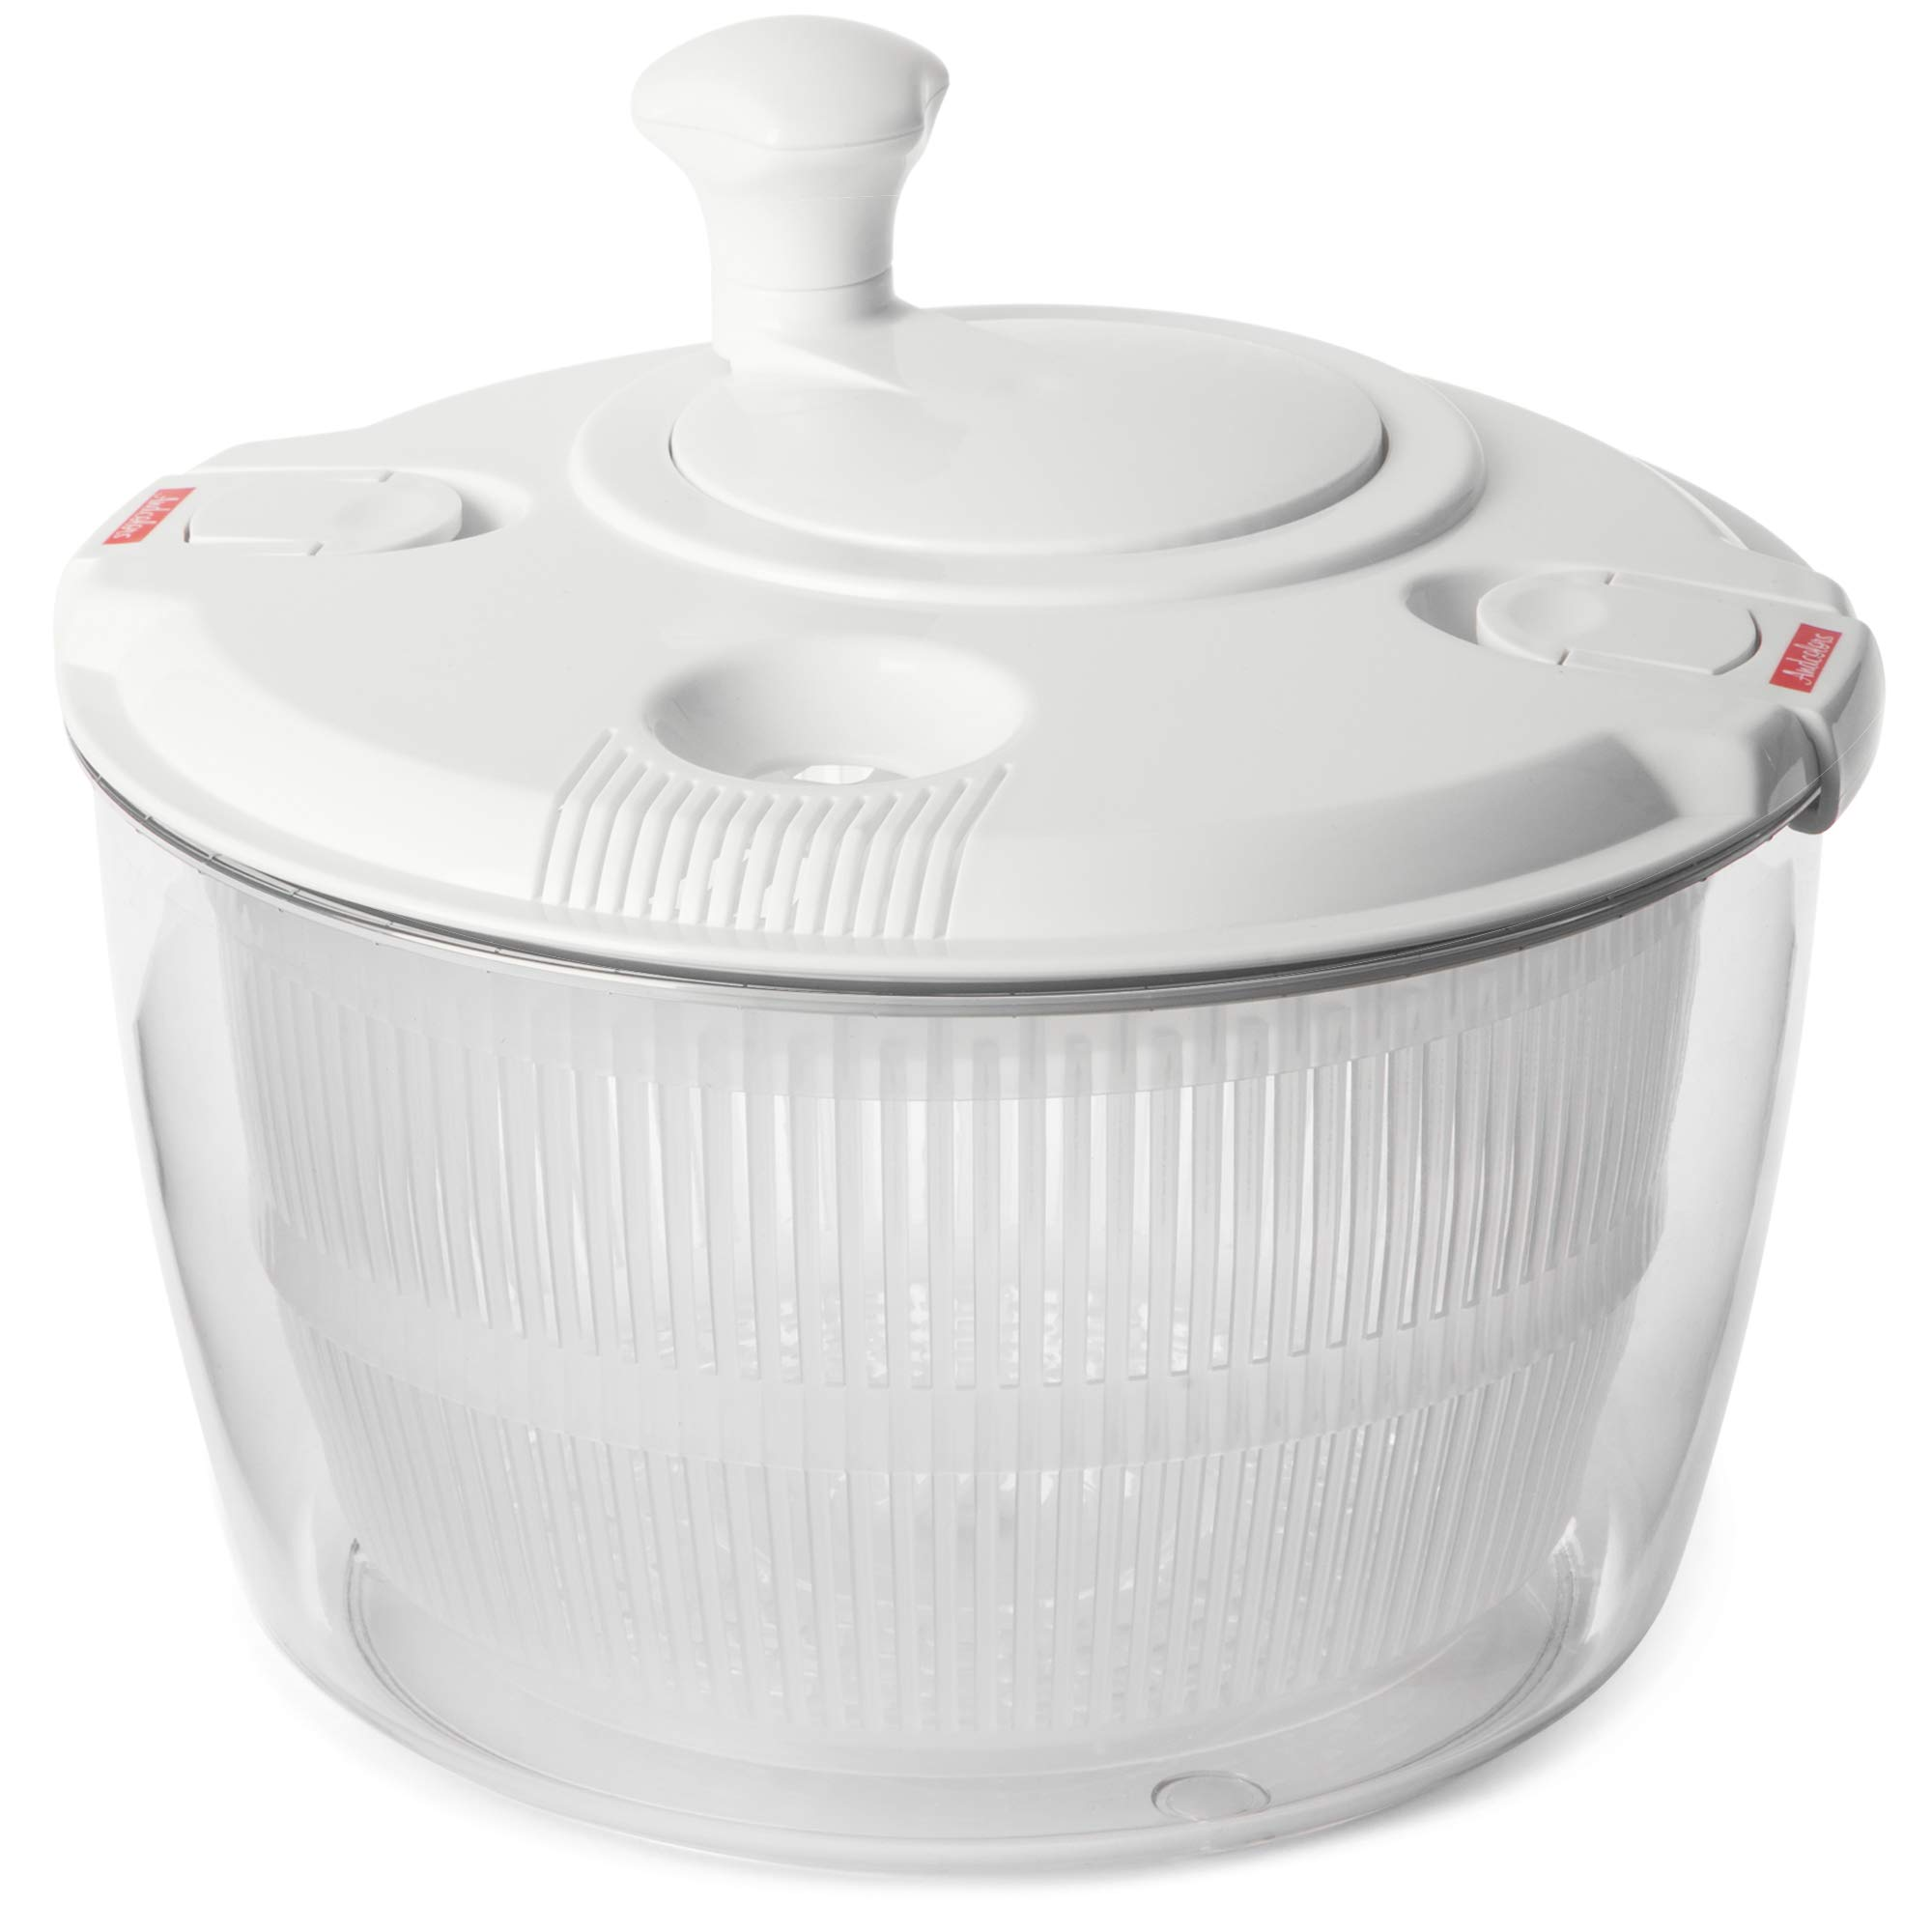 Andcolors Deluxe Salad Spinner Large 4.7 qt Size BPA Free Clips & Locking Tabs for Safety Dry & Drain Lettuce Easily for Crisper Salads in Half the Time Bowl Goes from Prep to Table (Large) by Andcolors